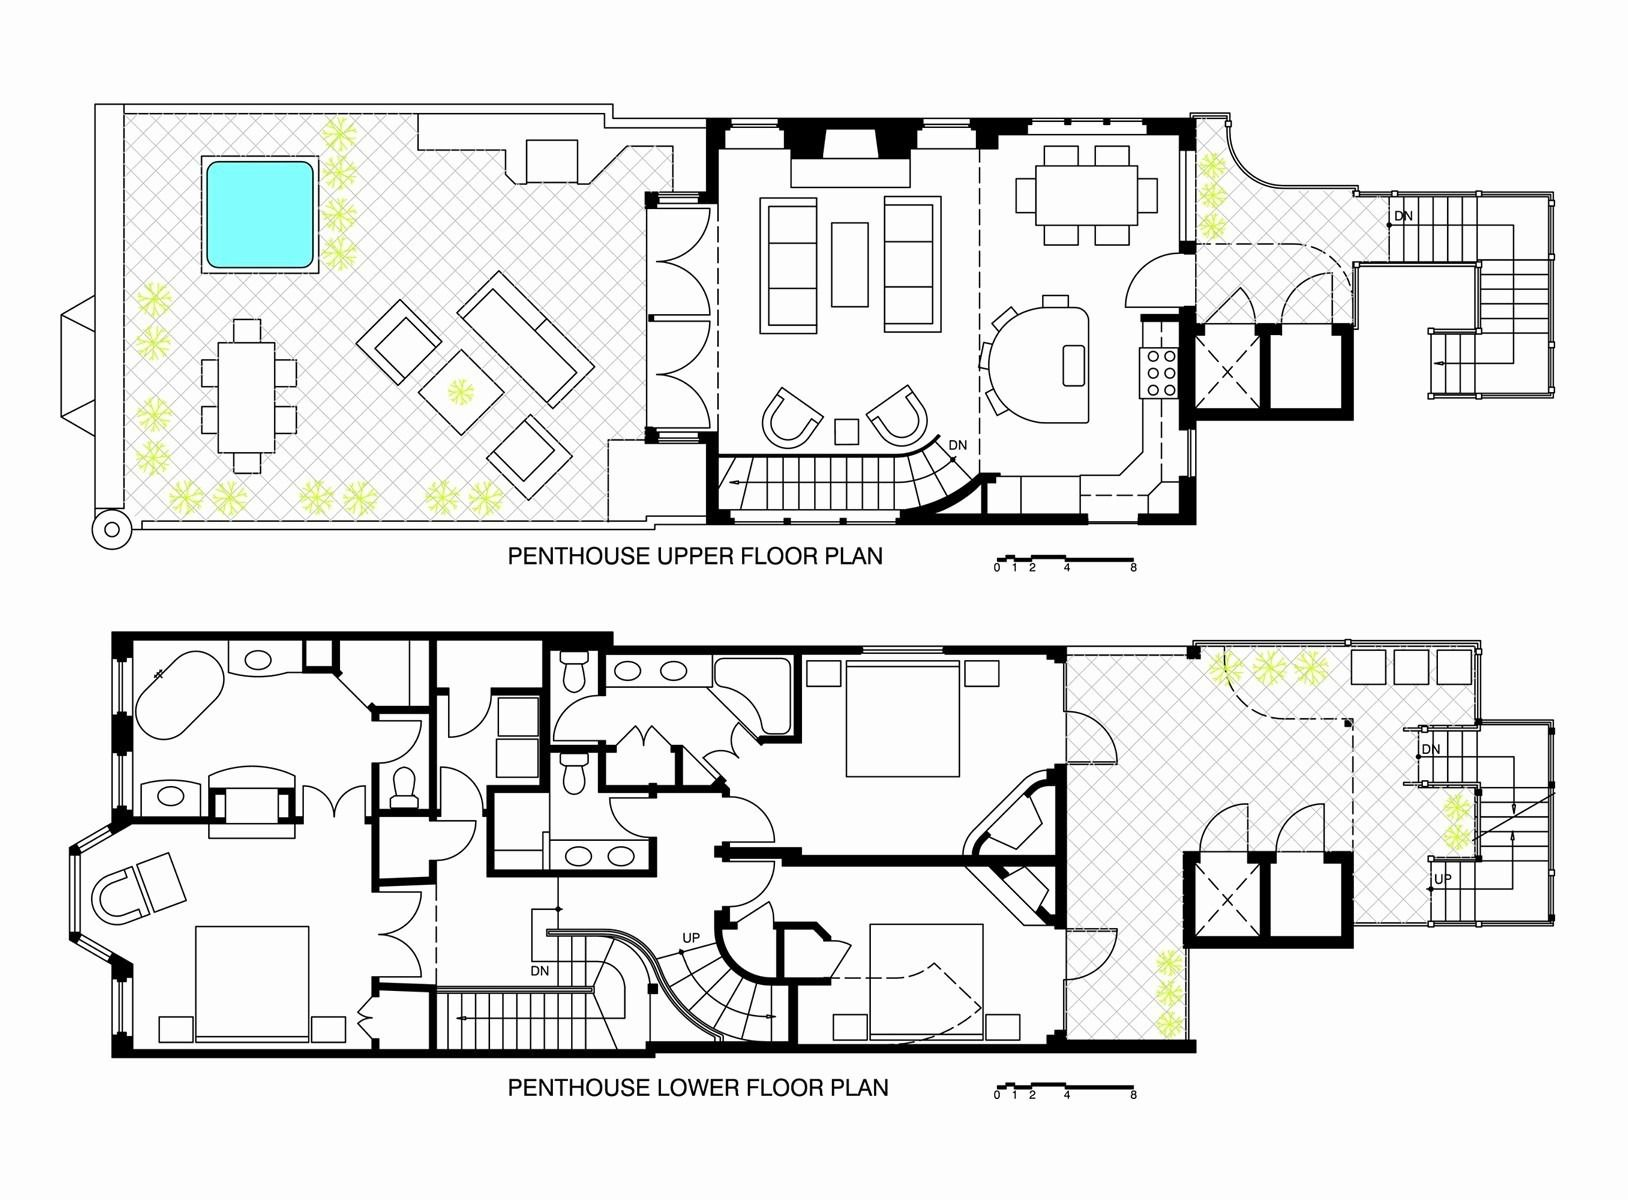 Bedroom Floor Plan Dimensions Check More At Http Www Homeplans Club 2019 06 06 Bedroom Floor Plan Floor Plan Design Apartment Floor Plans Bedroom Floor Plans